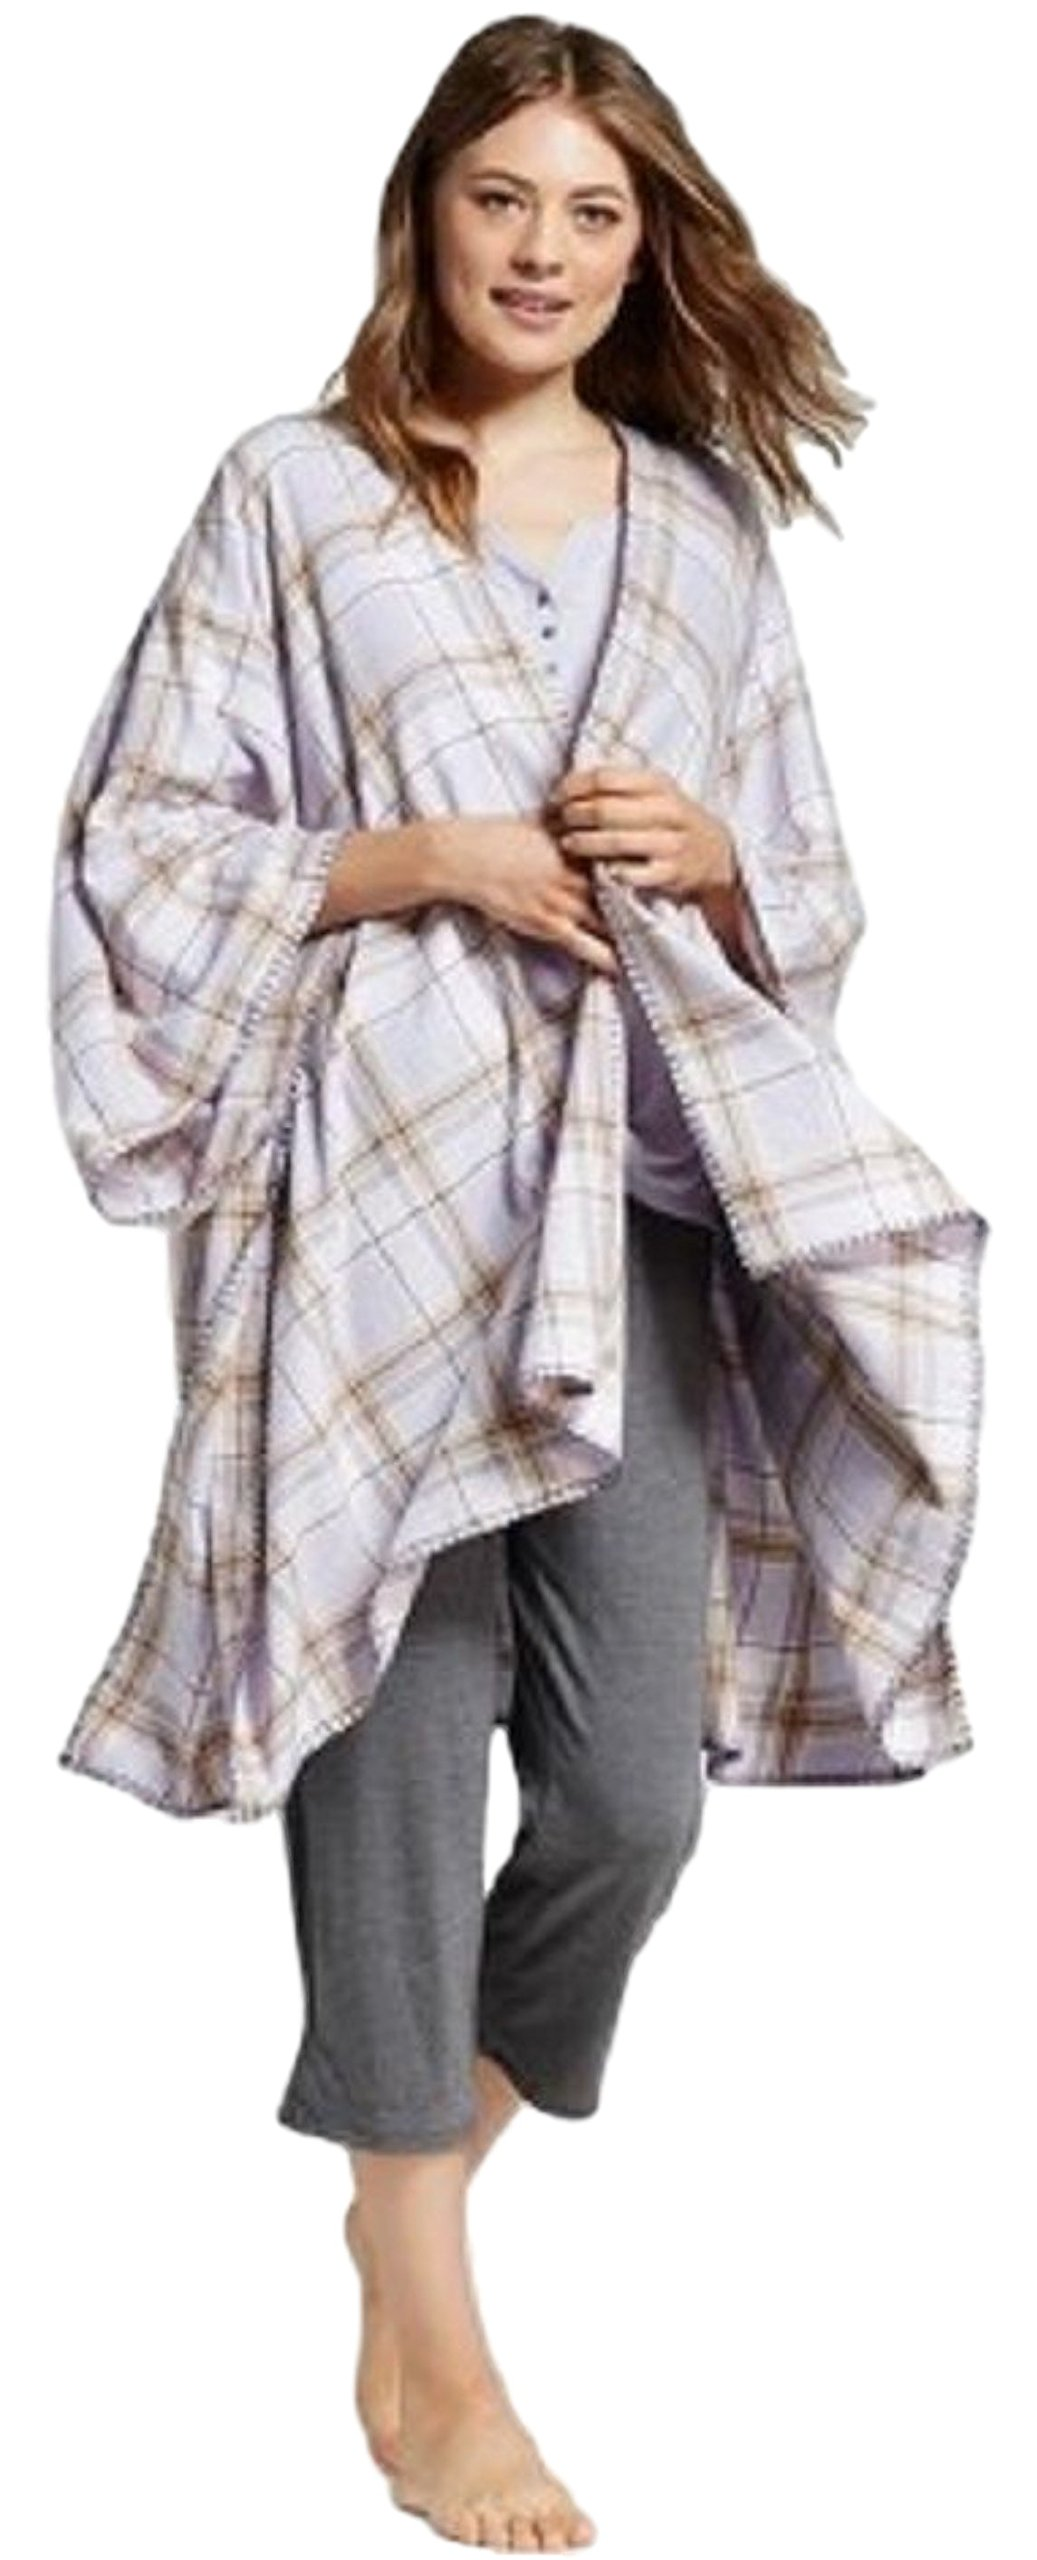 Gilligan and O'Malley Women's Flannel Wrap Pajama